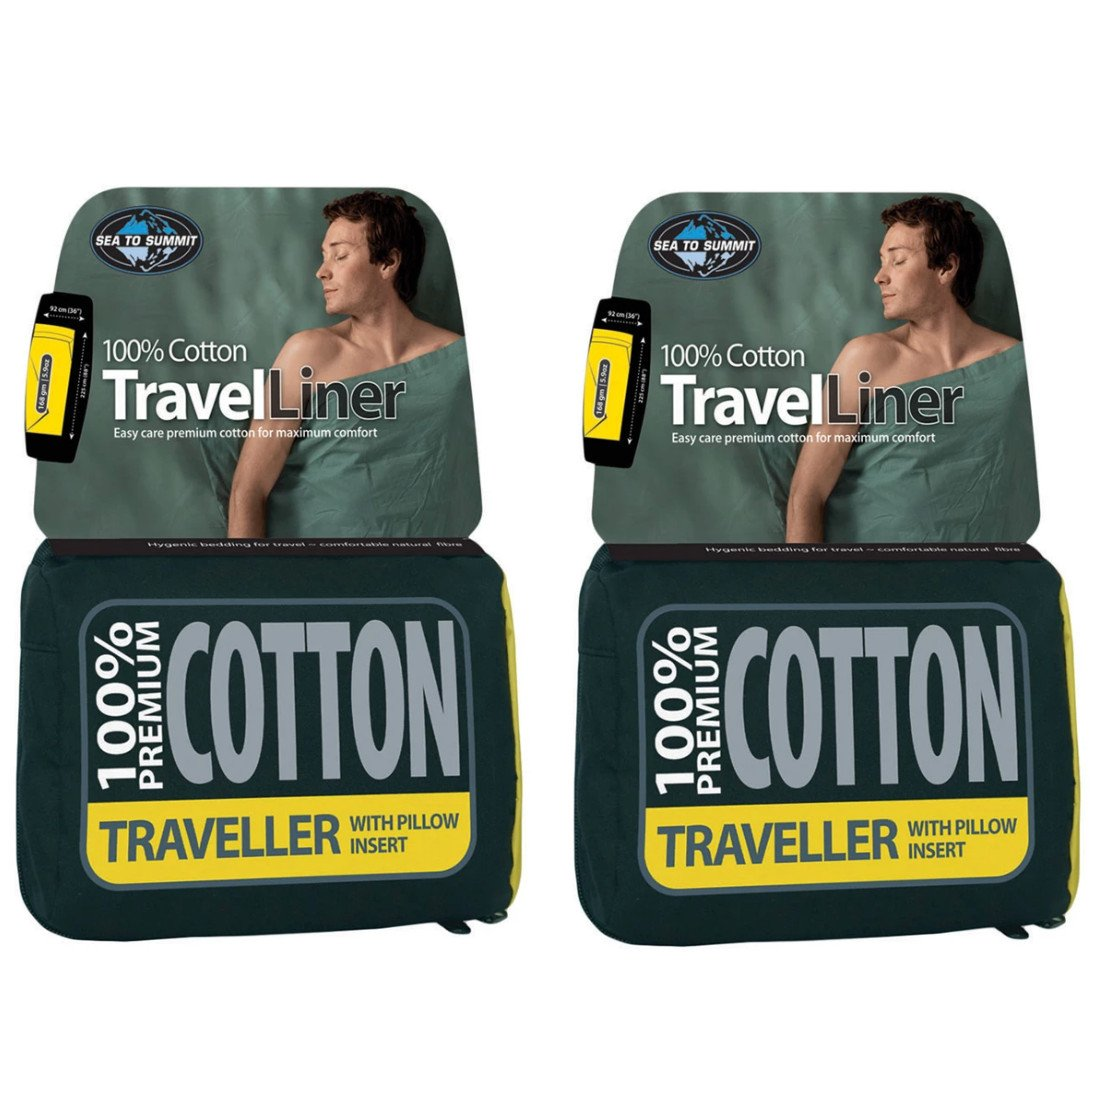 Sea to Summit Cotton Travel Liner (Pacific) 2-Pack